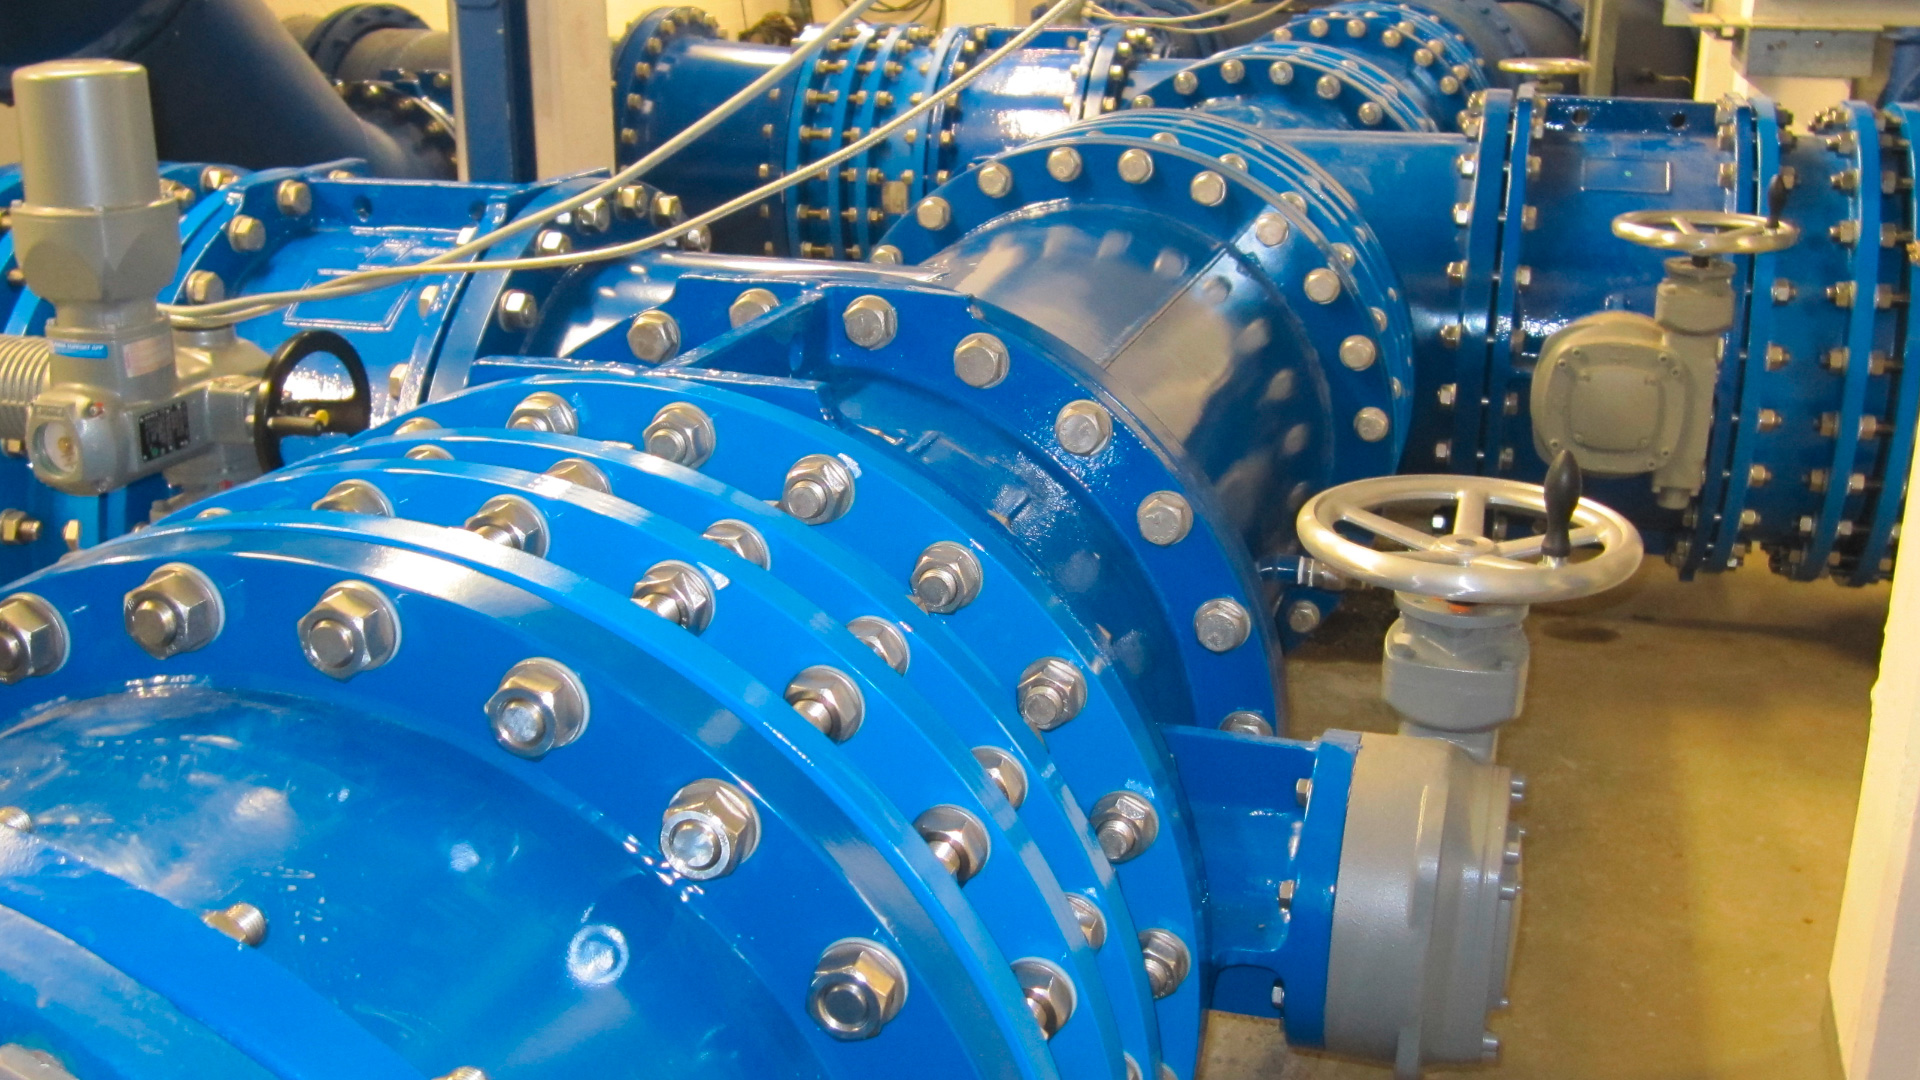 Butterfly valves installed at water treatment plant in Hamburg, Germany